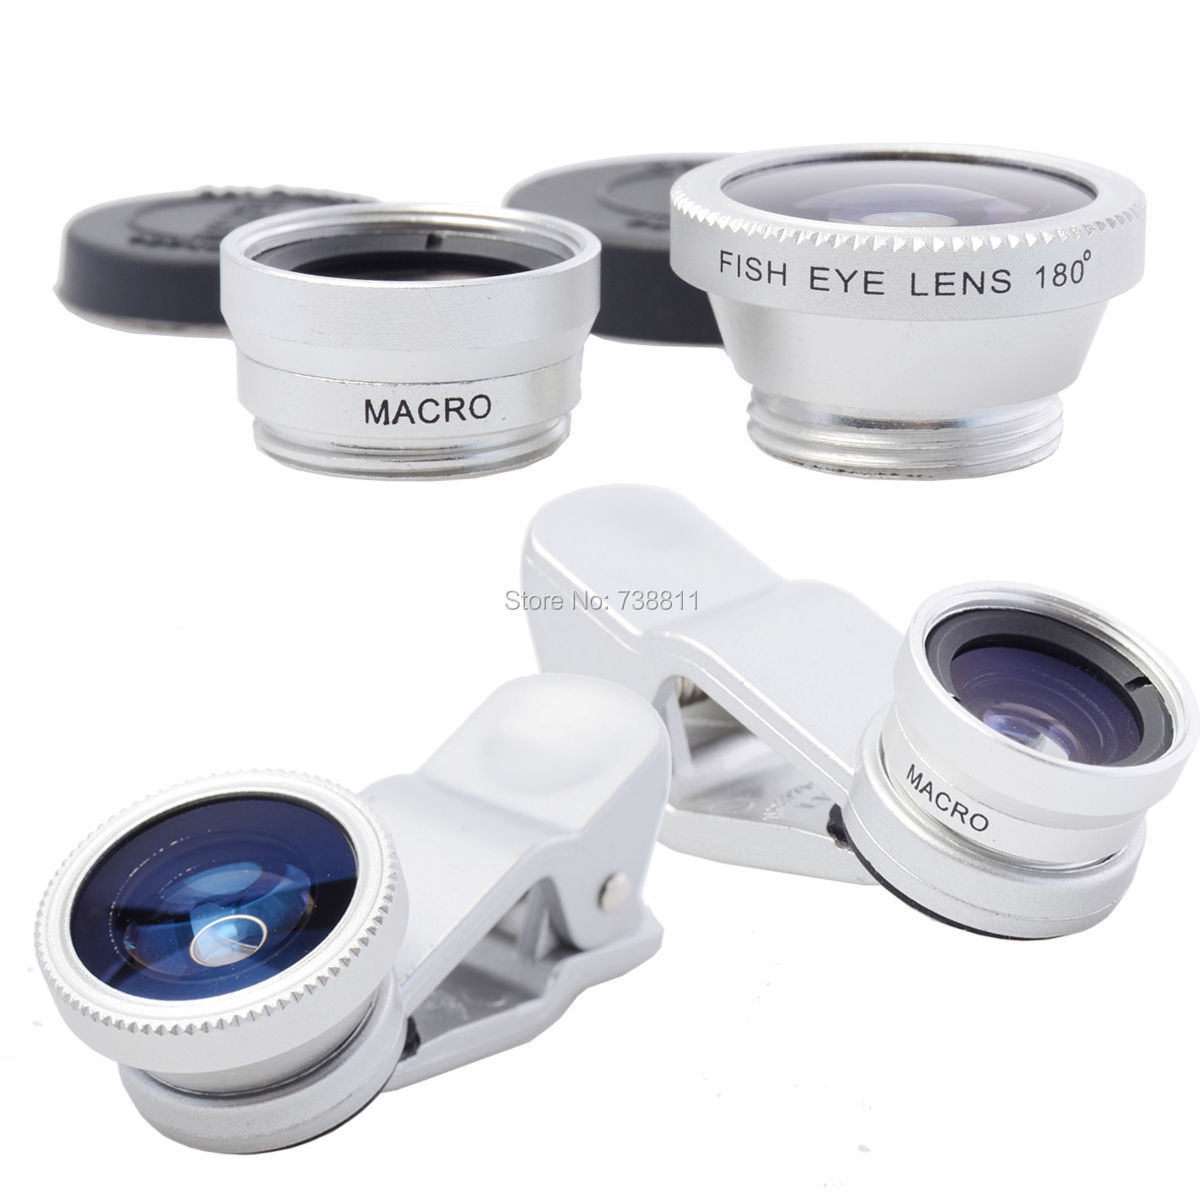 FREE Shipping/ 3 in 1 180 Degree Fish Eye+Wide Angle+Macro Camera Phone Lens For iPhone 5/5S/5C/4S/4/For Samsung Galaxy S5/S4/S3(China (Mainland))